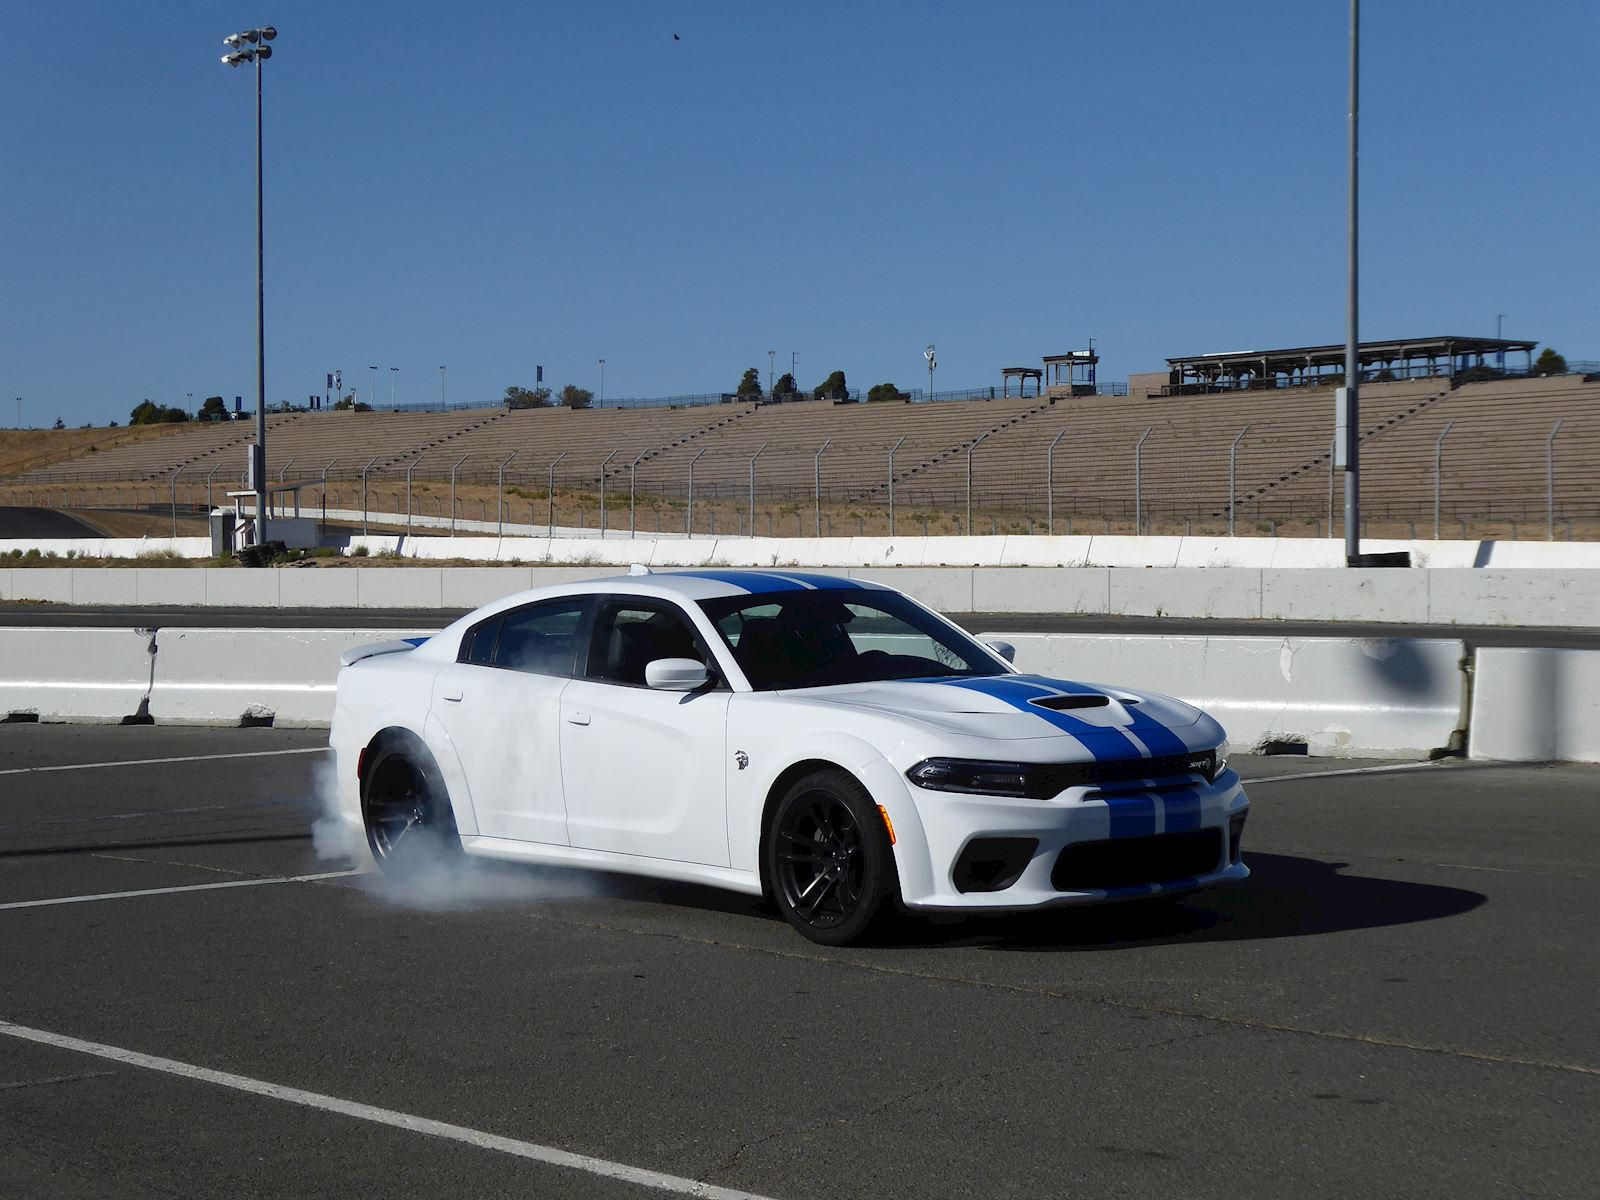 2020 Dodge Charger SRT Hellcat Widebody styling blue stripes burnout